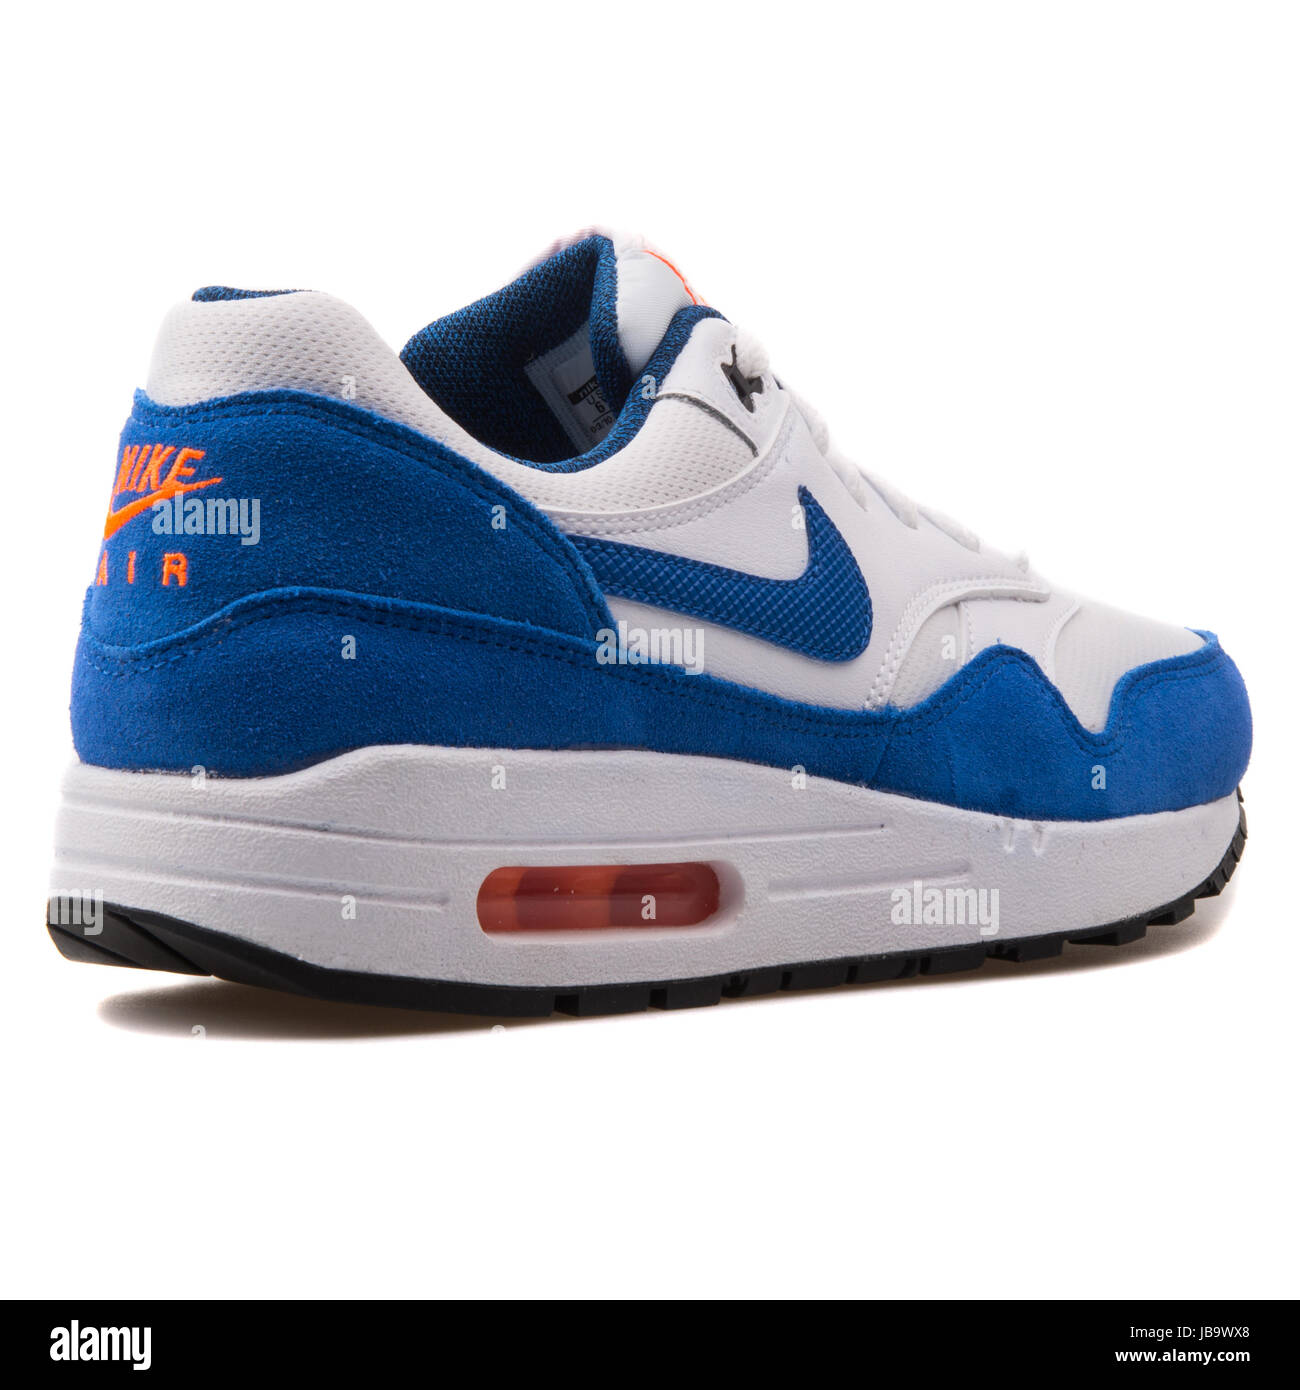 df8ec7b9 Nike Air Max 1 (GS) White and Blue Youth's Running Shoes - 555766-120